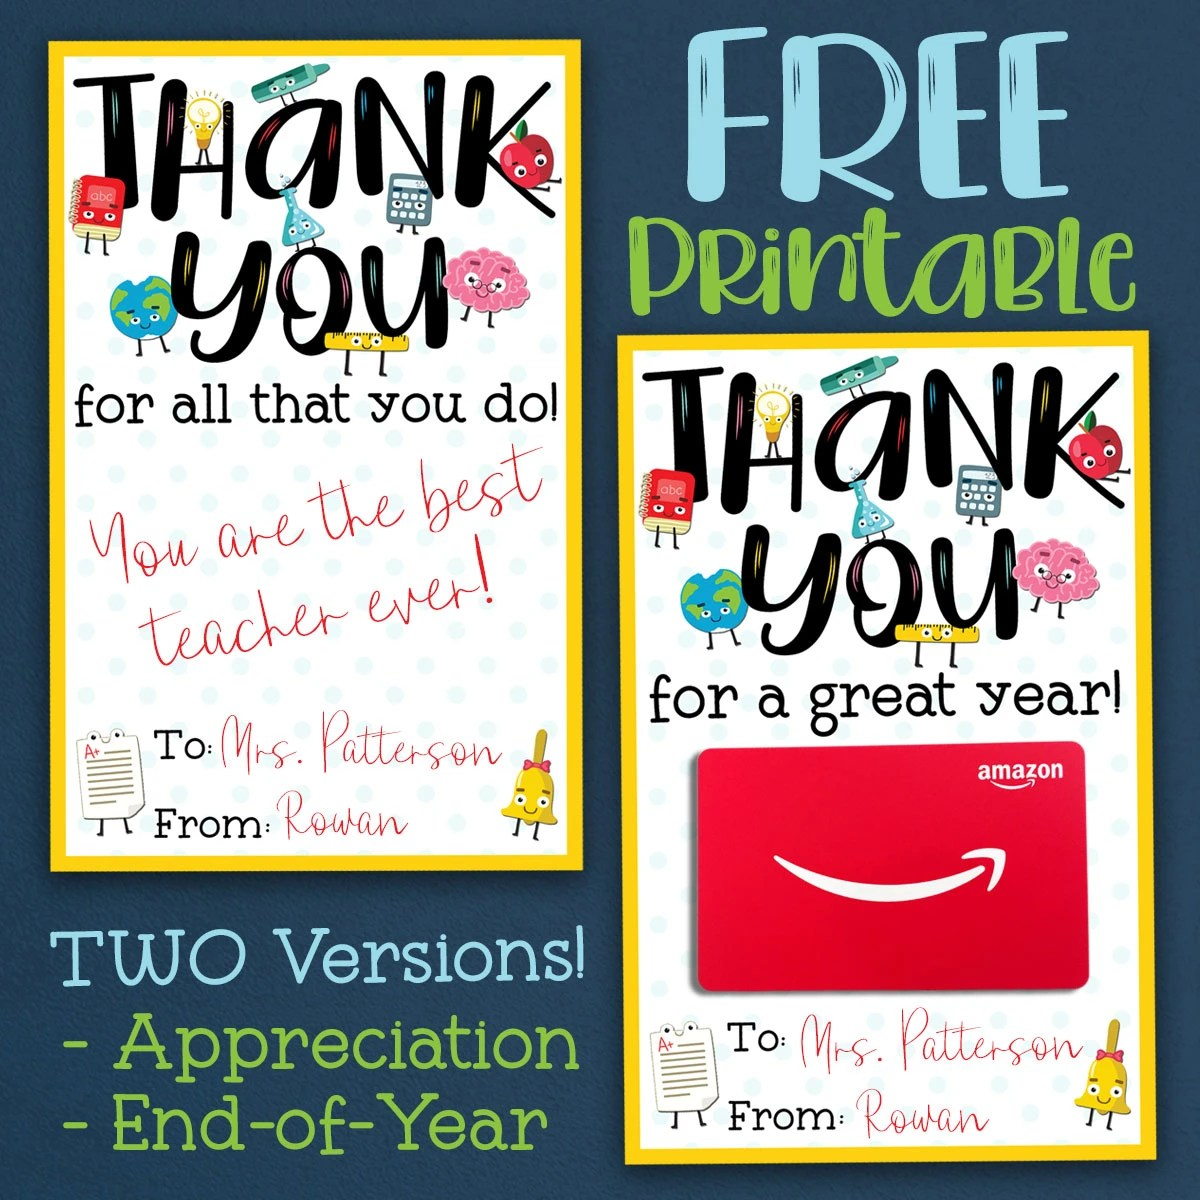 photo about Teacher Thank You Printable titled Totally free Instructor Appreciation Thank Your self Printable - 2 Designs!